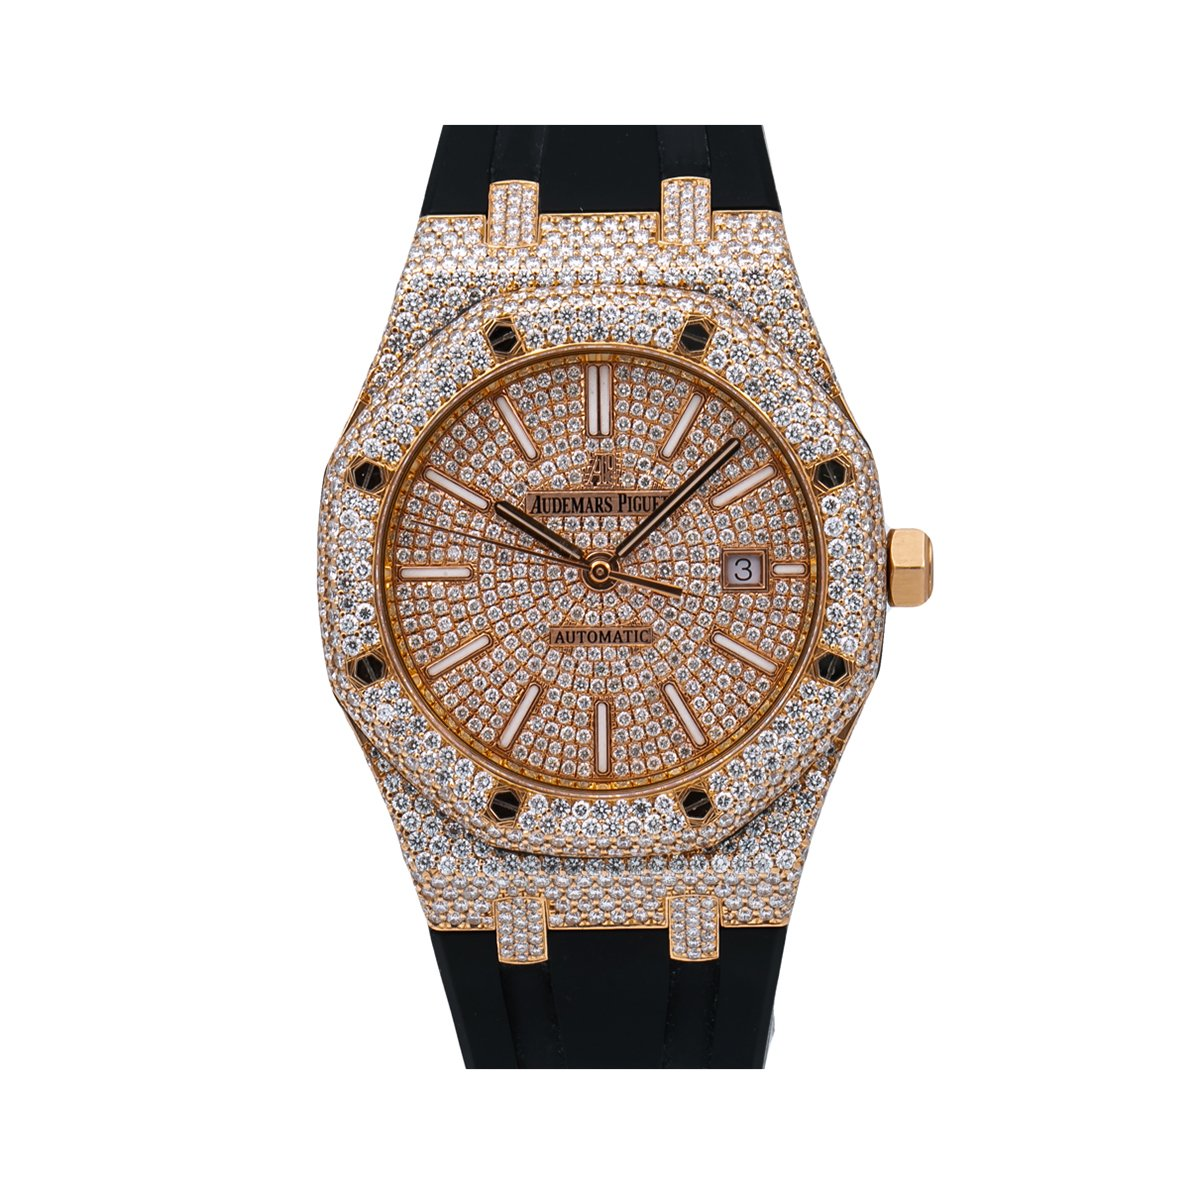 Audemars Piguet Royal Oak 15400OR 41MM Rose Gold Diamond Dial With 14.75 CT Diamonds